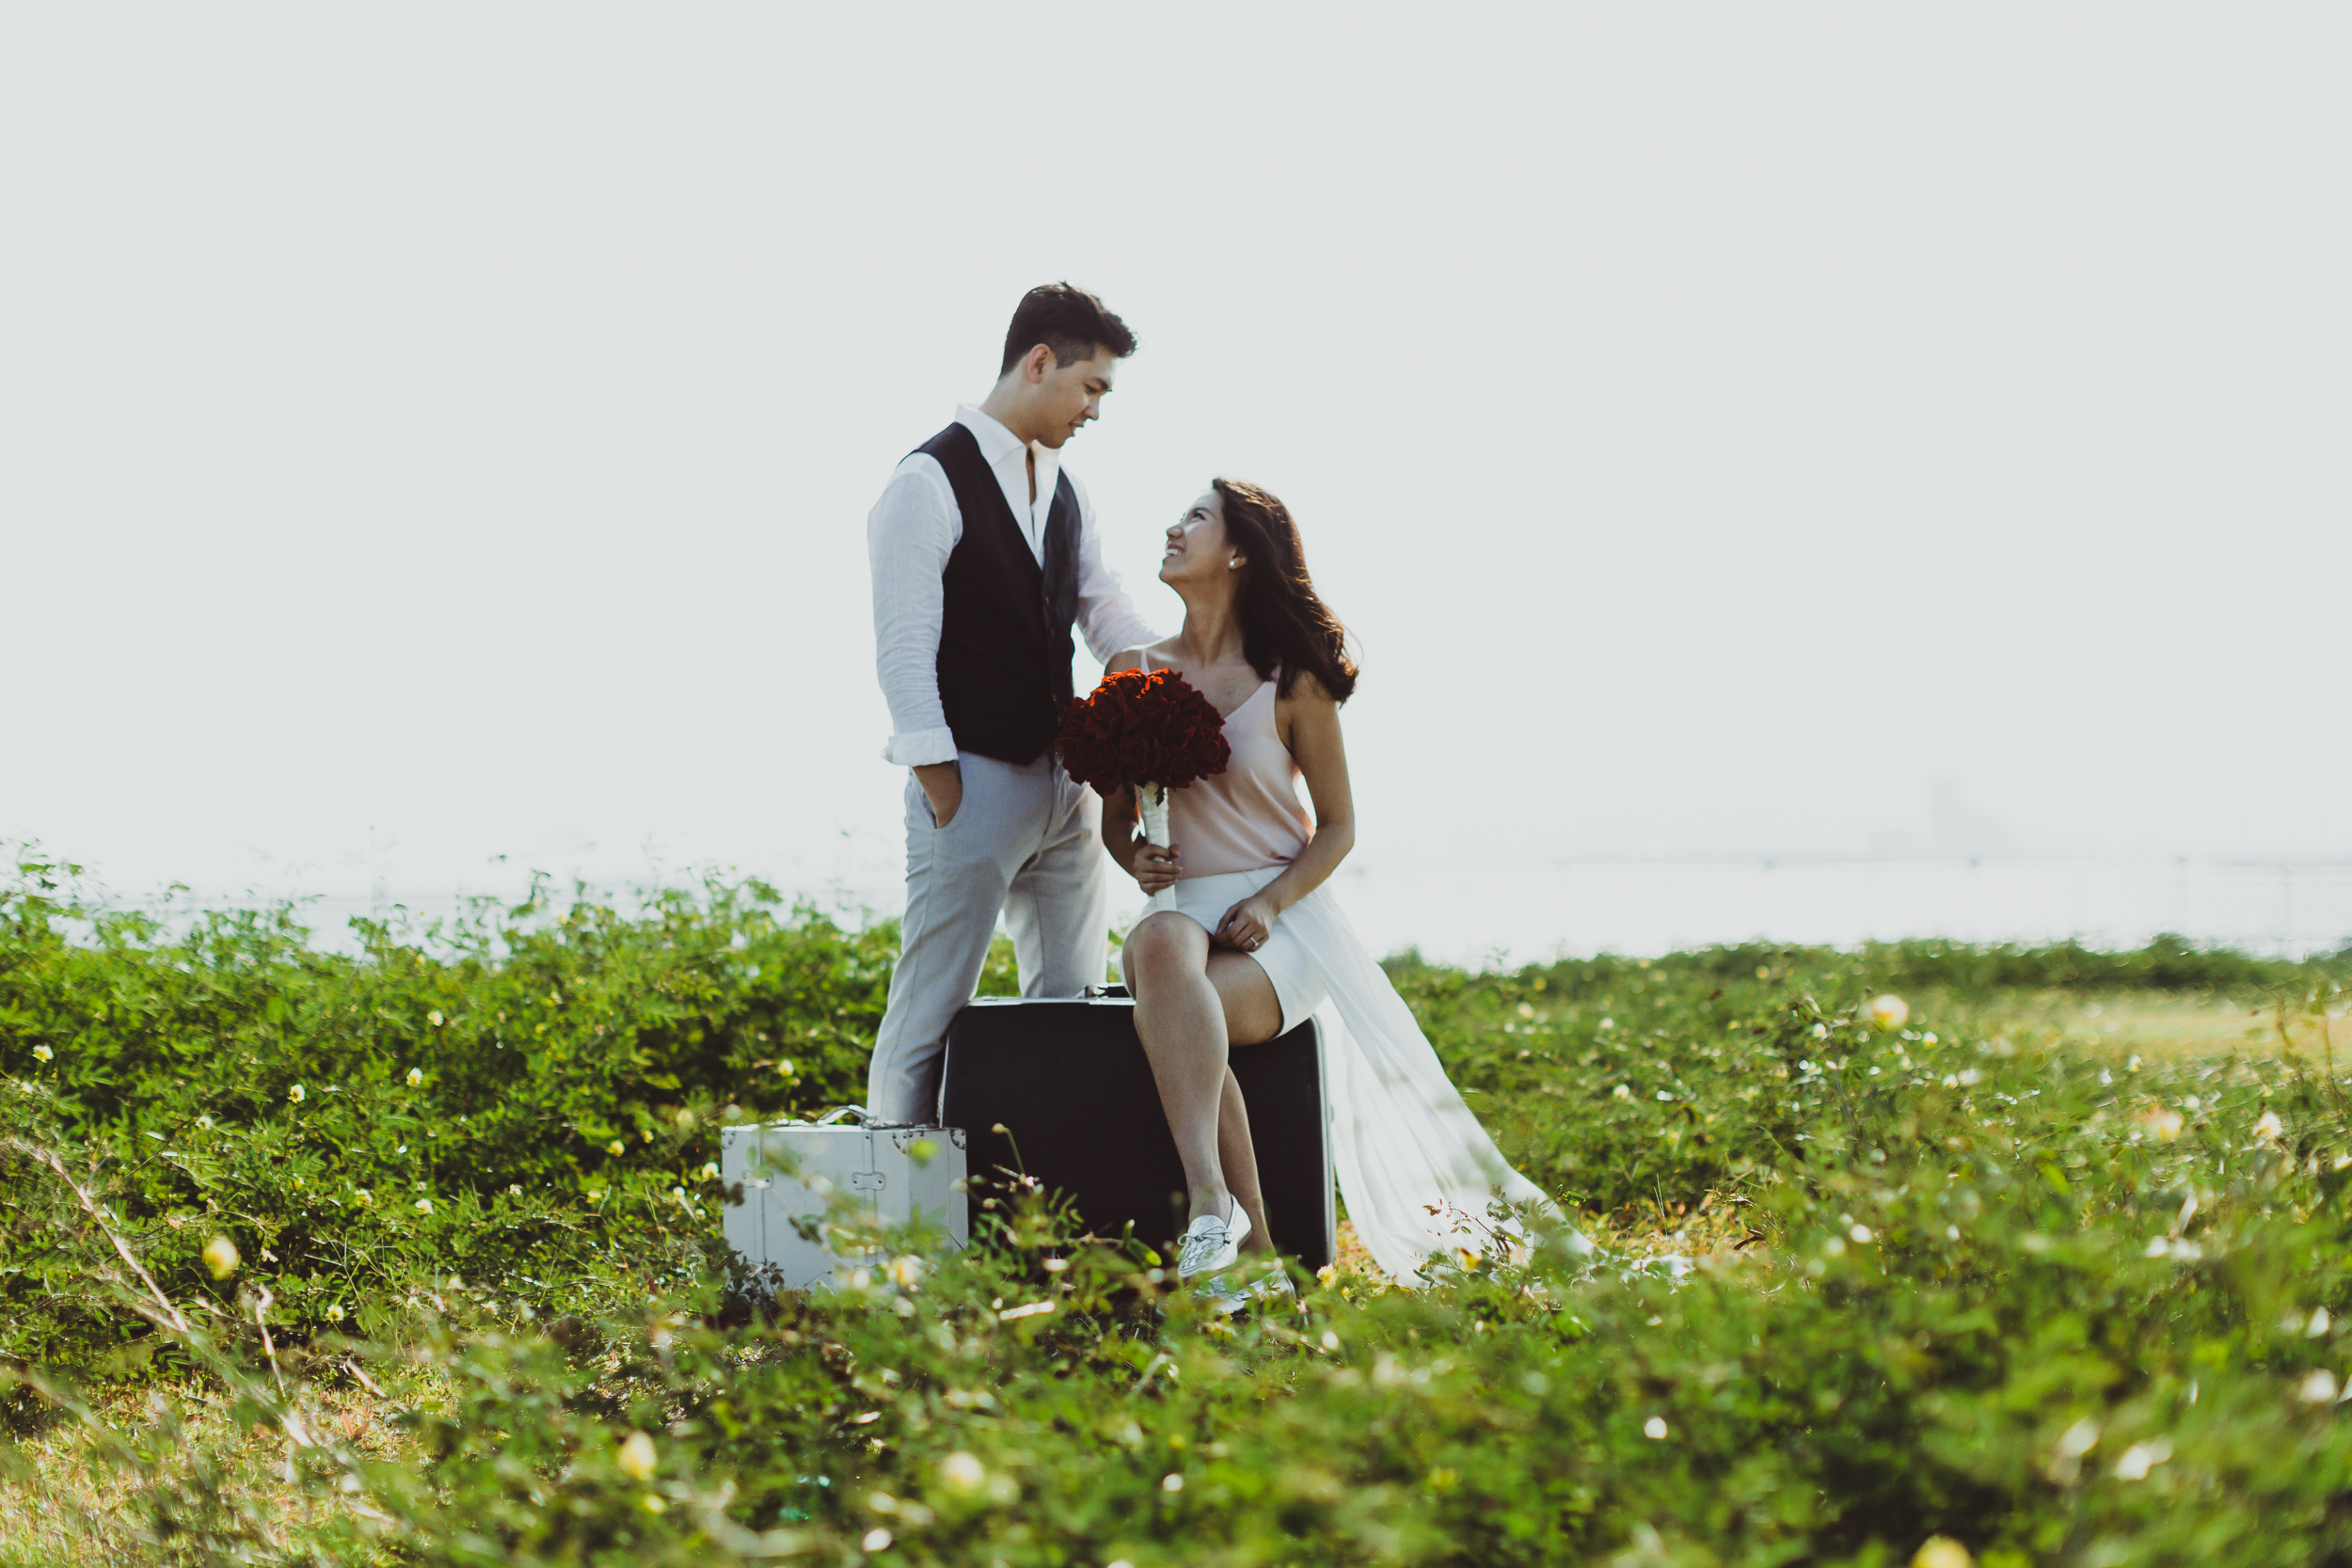 Singapore+Pre+Wedding+Photographer+Jeremiah+Christina-0031.jpg